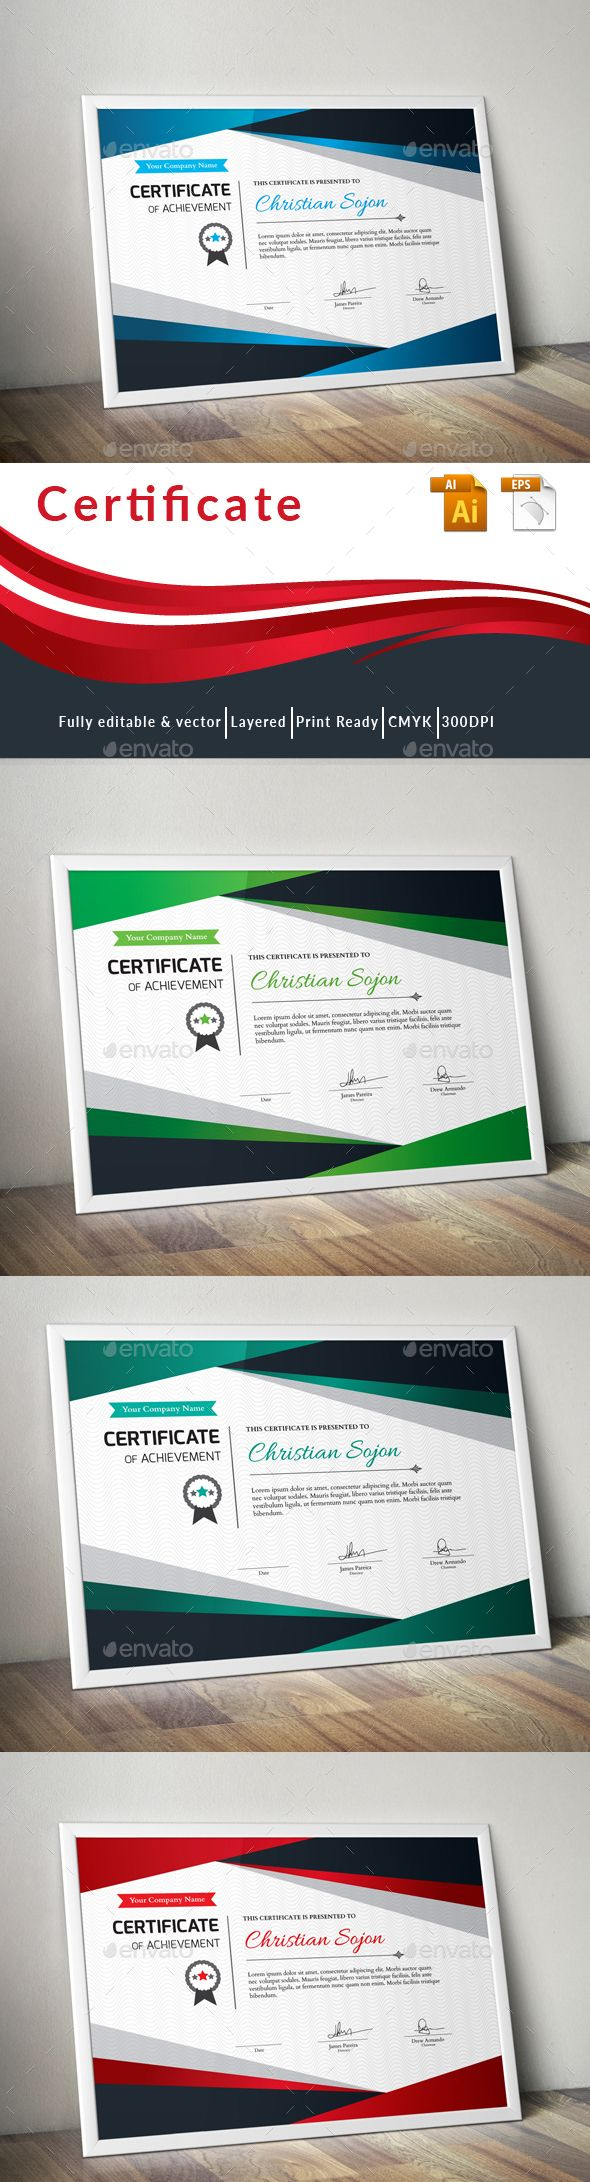 #Certificate - Certificates Stationery Download here: https://graphicriver.net/item/certificate/19394922?ref=alena994